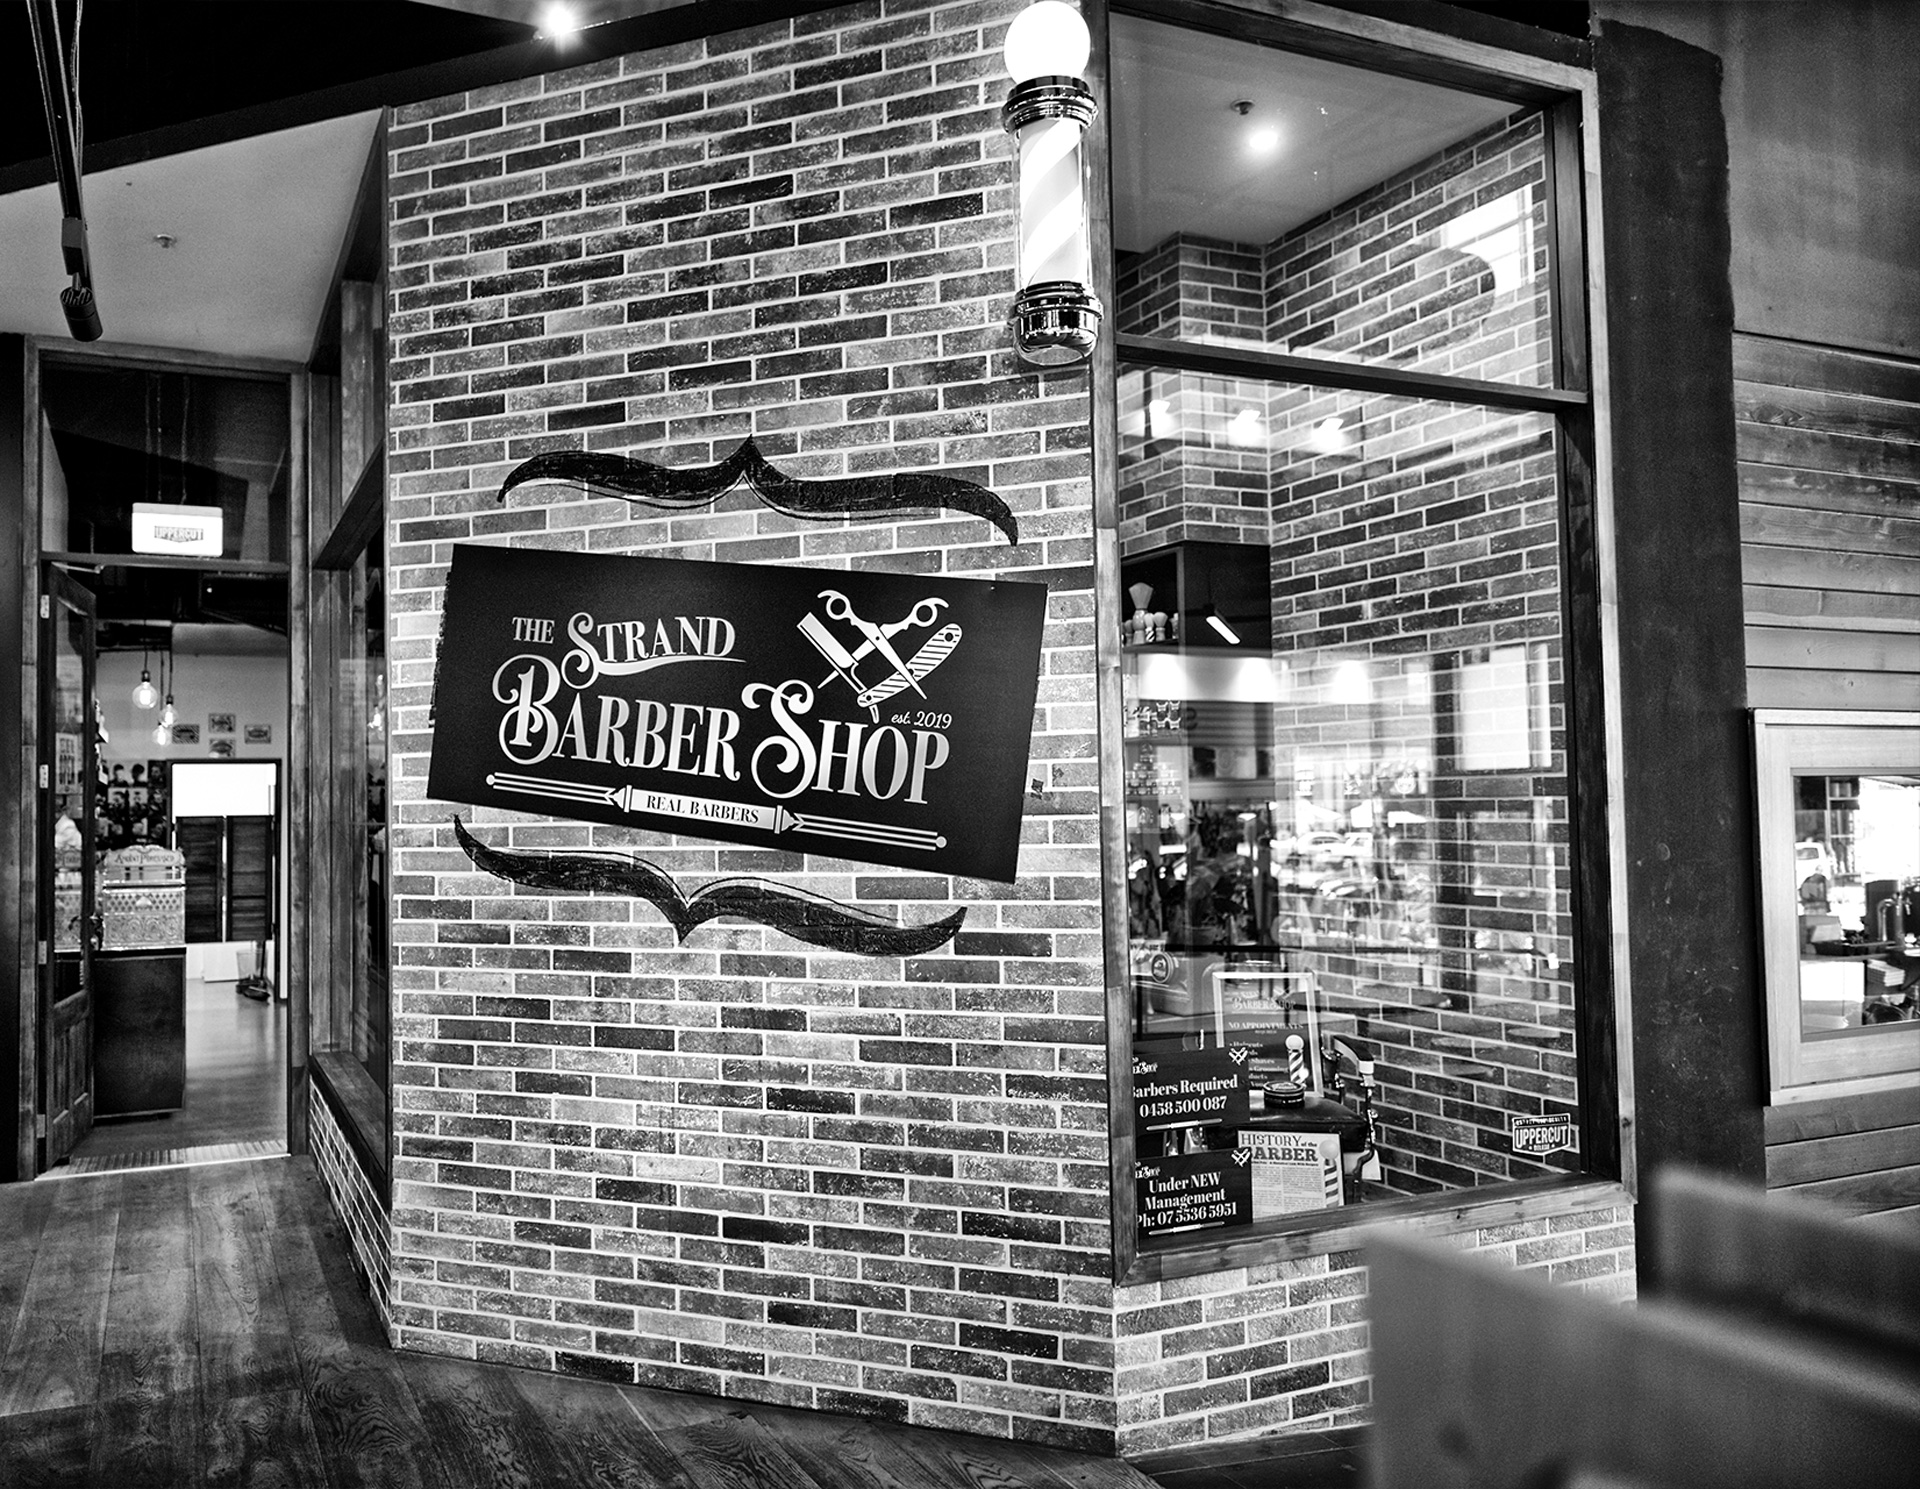 the-strand-barbers-08 - The Strand Barber Shop